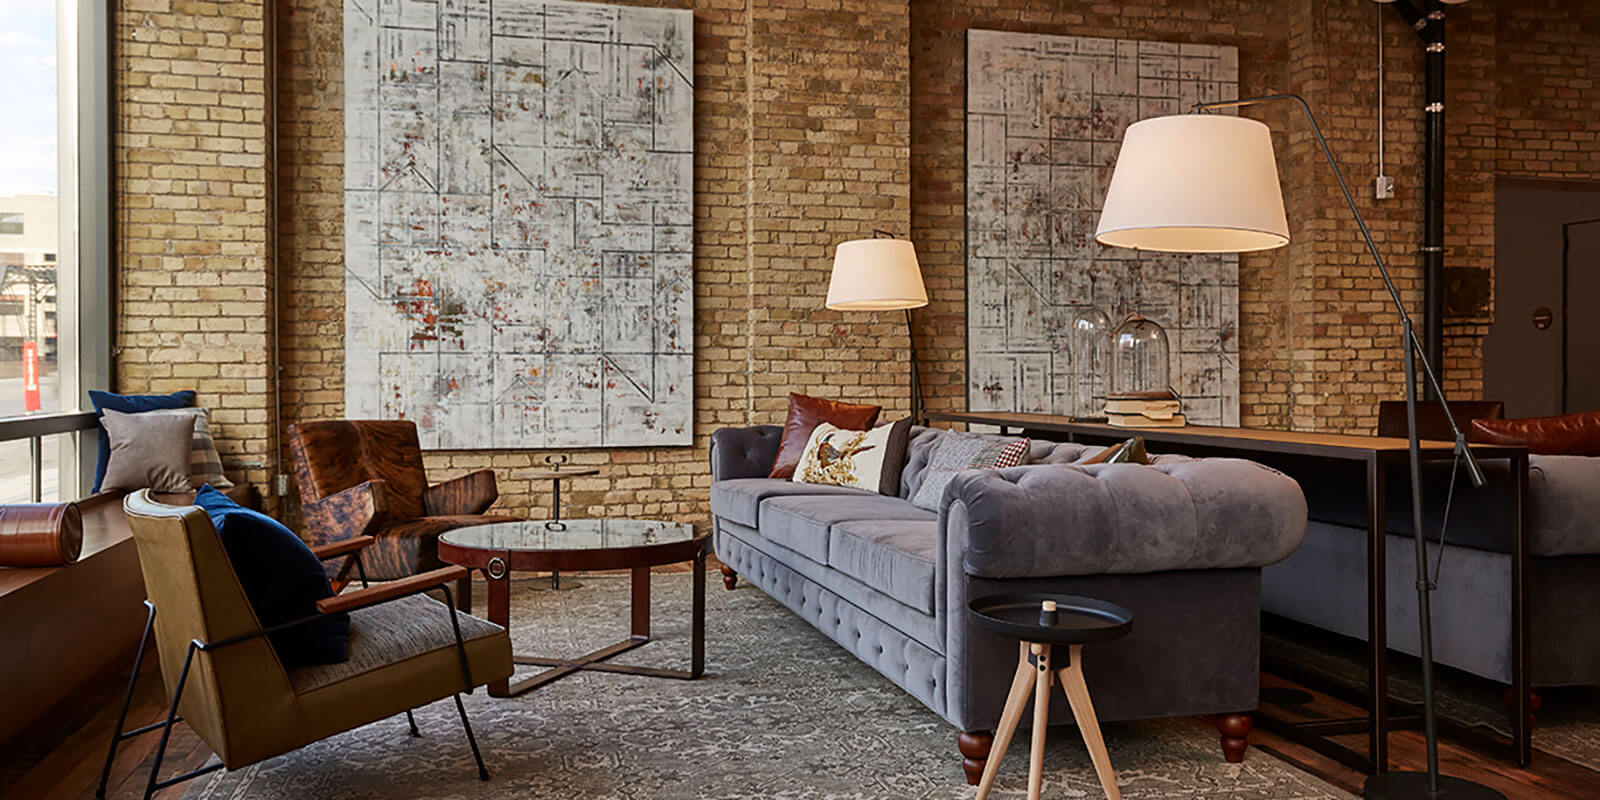 hewing hotel painting couch interior